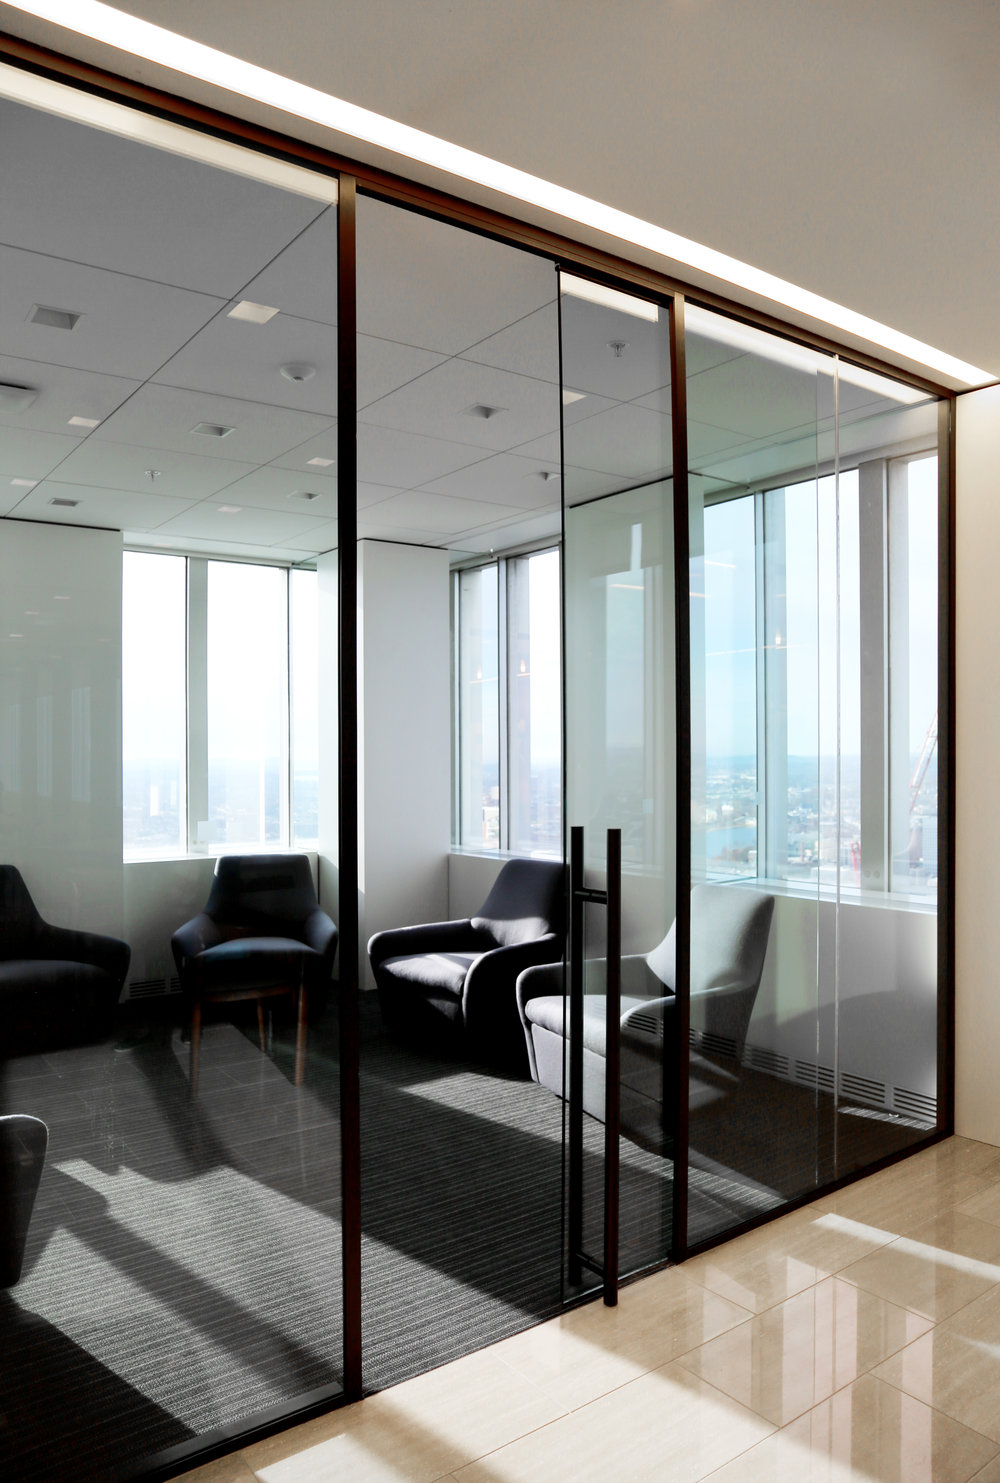 Modernus Demountable Glass Huddle Room Sliding Door - Spaceworks AI.jpg